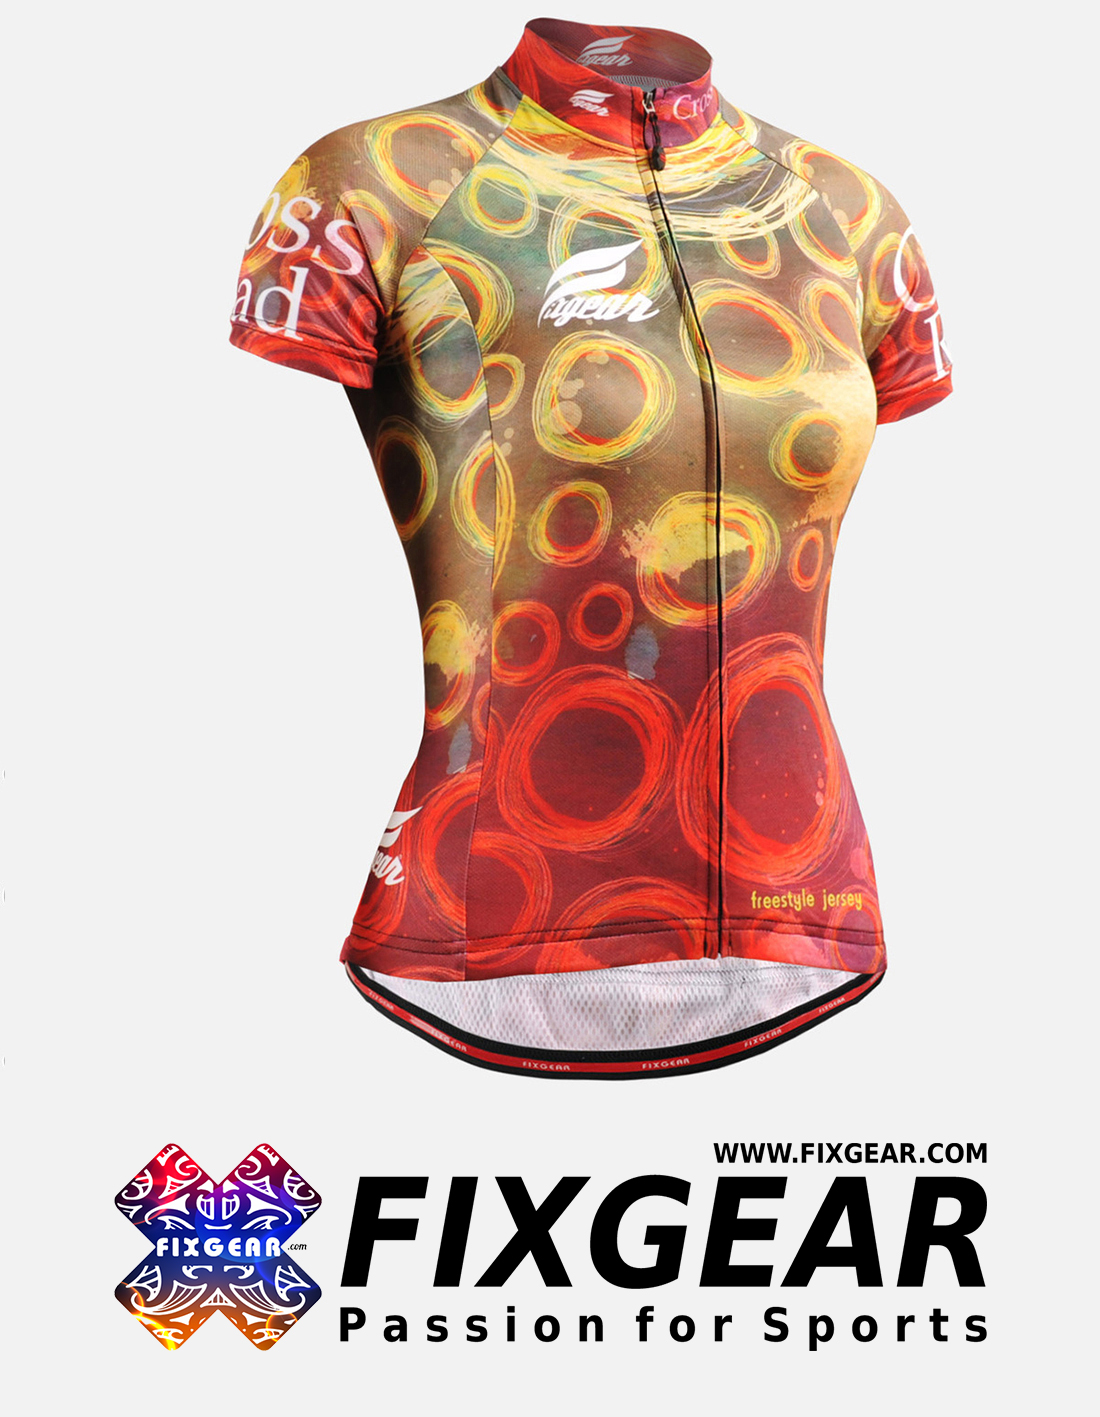 FIXGEAR CS-W402 Women's Short Sleeve Jersey